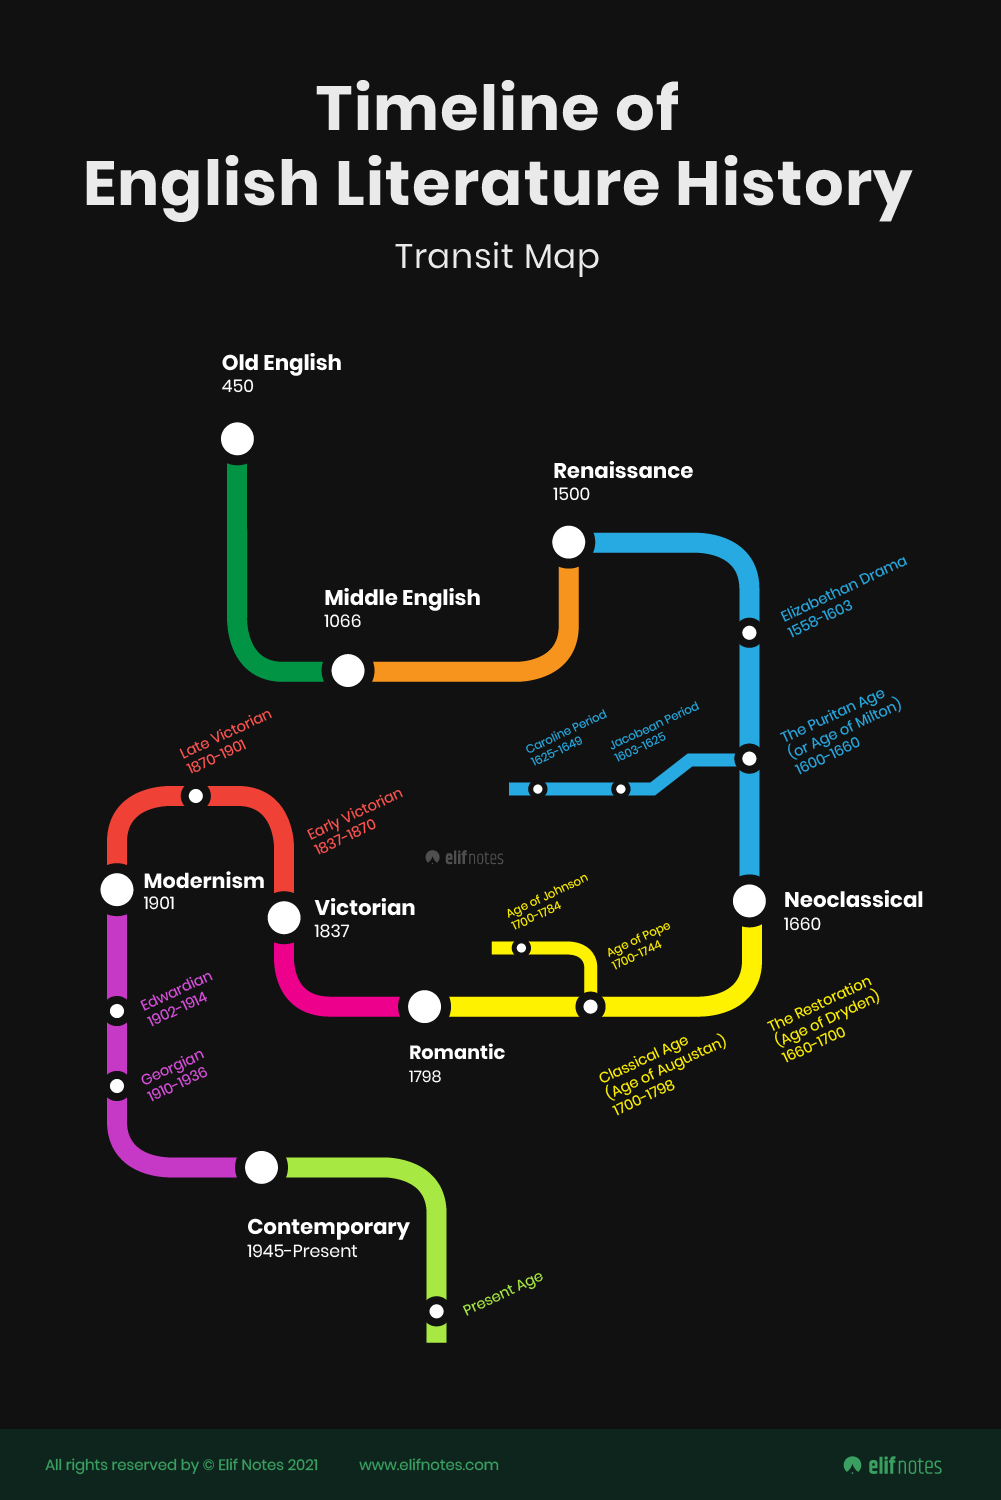 Timeline-of-english-literature-history-all-ages-and-sub-periods-flowcahrt